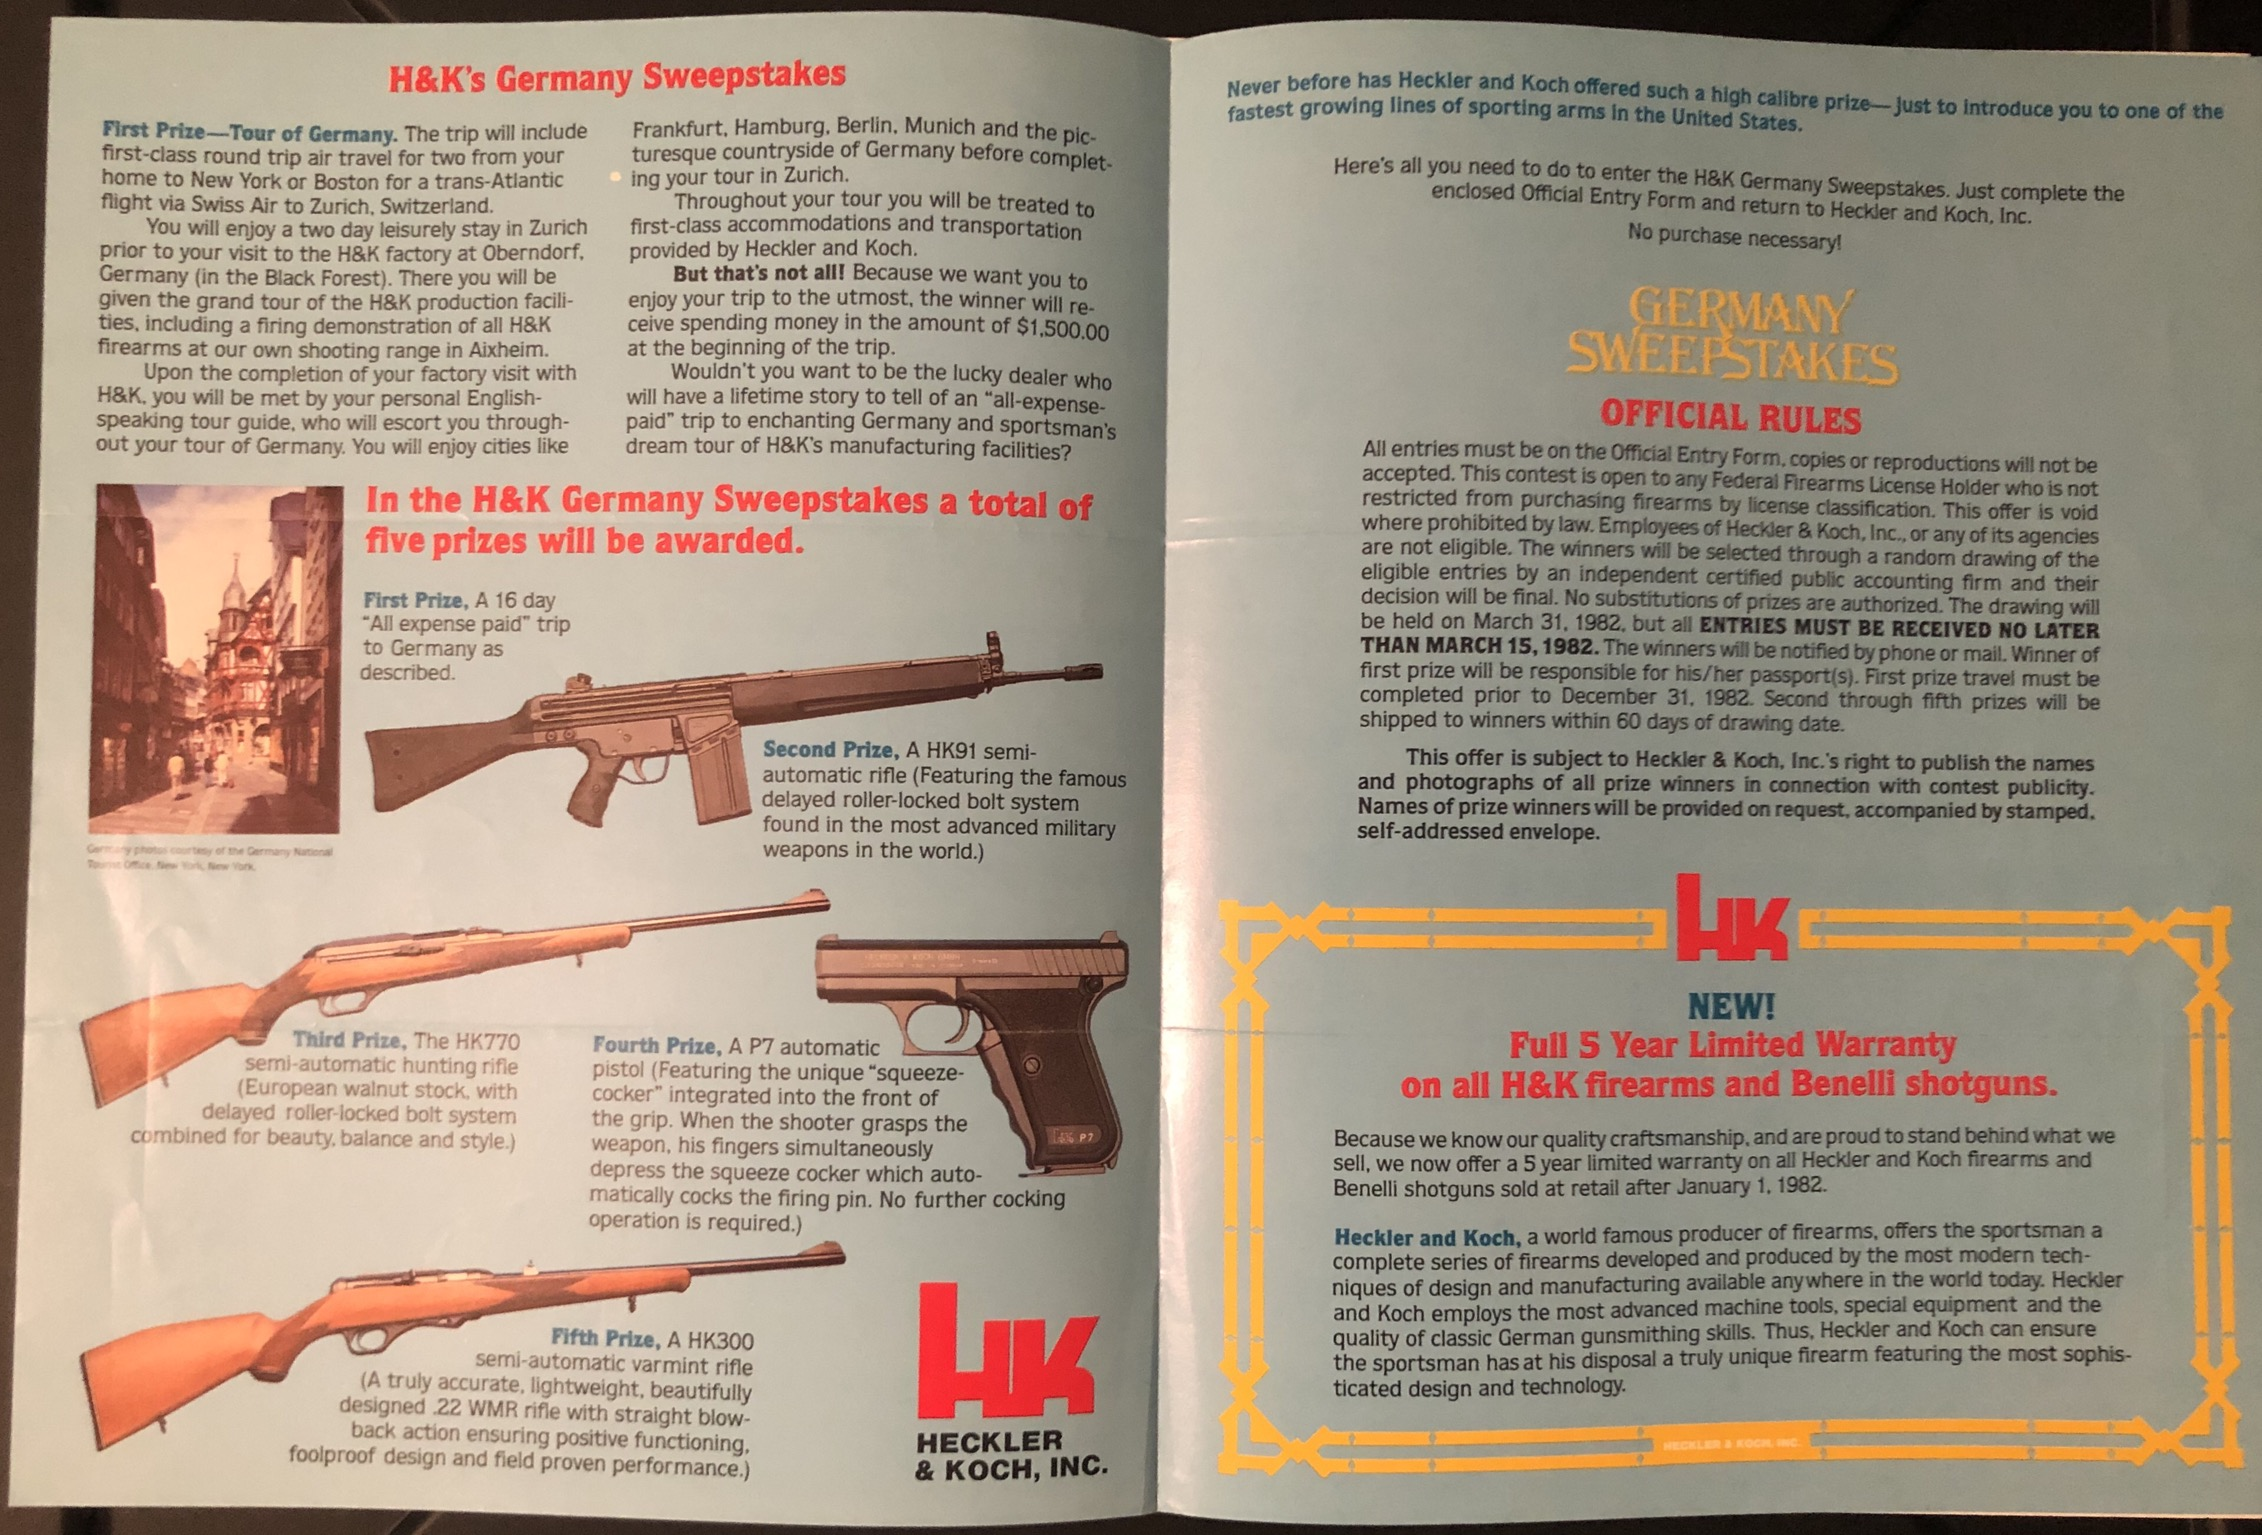 Heckler and Koch's Germany Sweepstakes-4c9a93f6-bcee-47c8-8f77-ddf4237311ed.jpeg